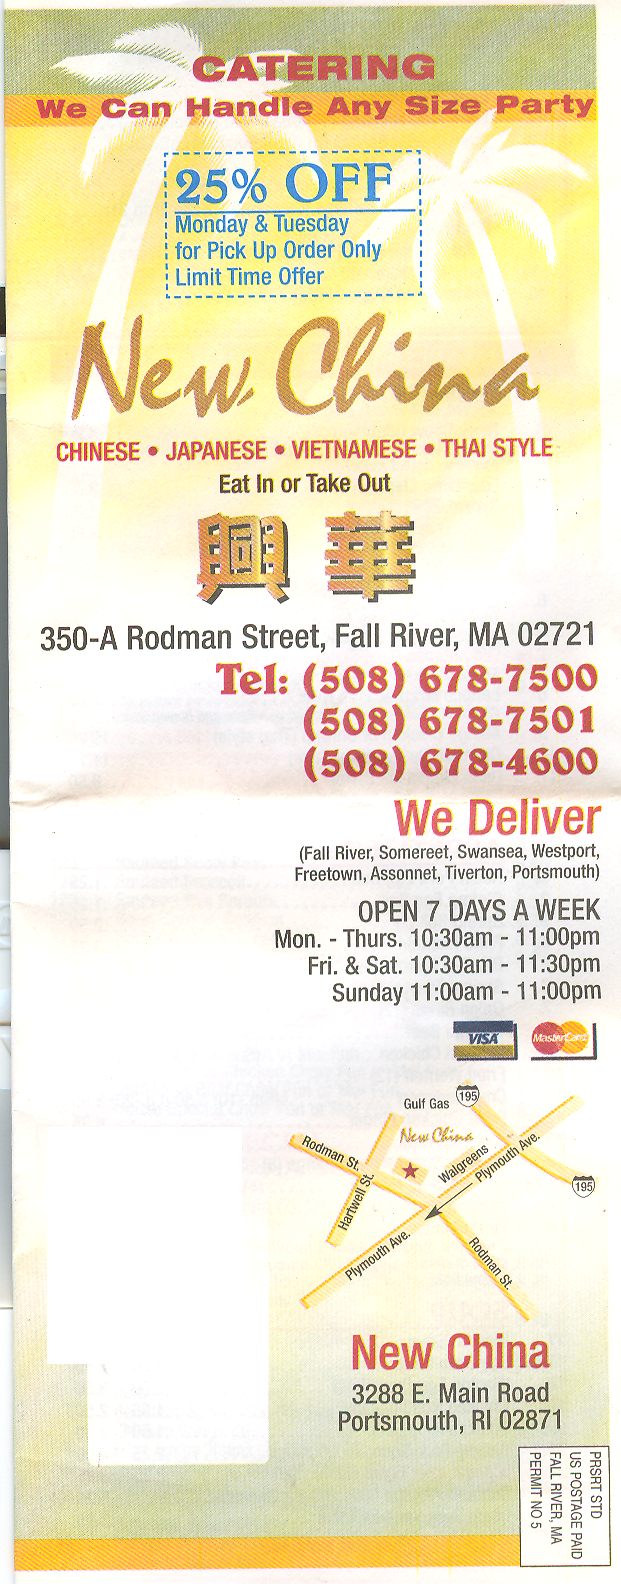 New China Fall River MA Menu: New china full menu